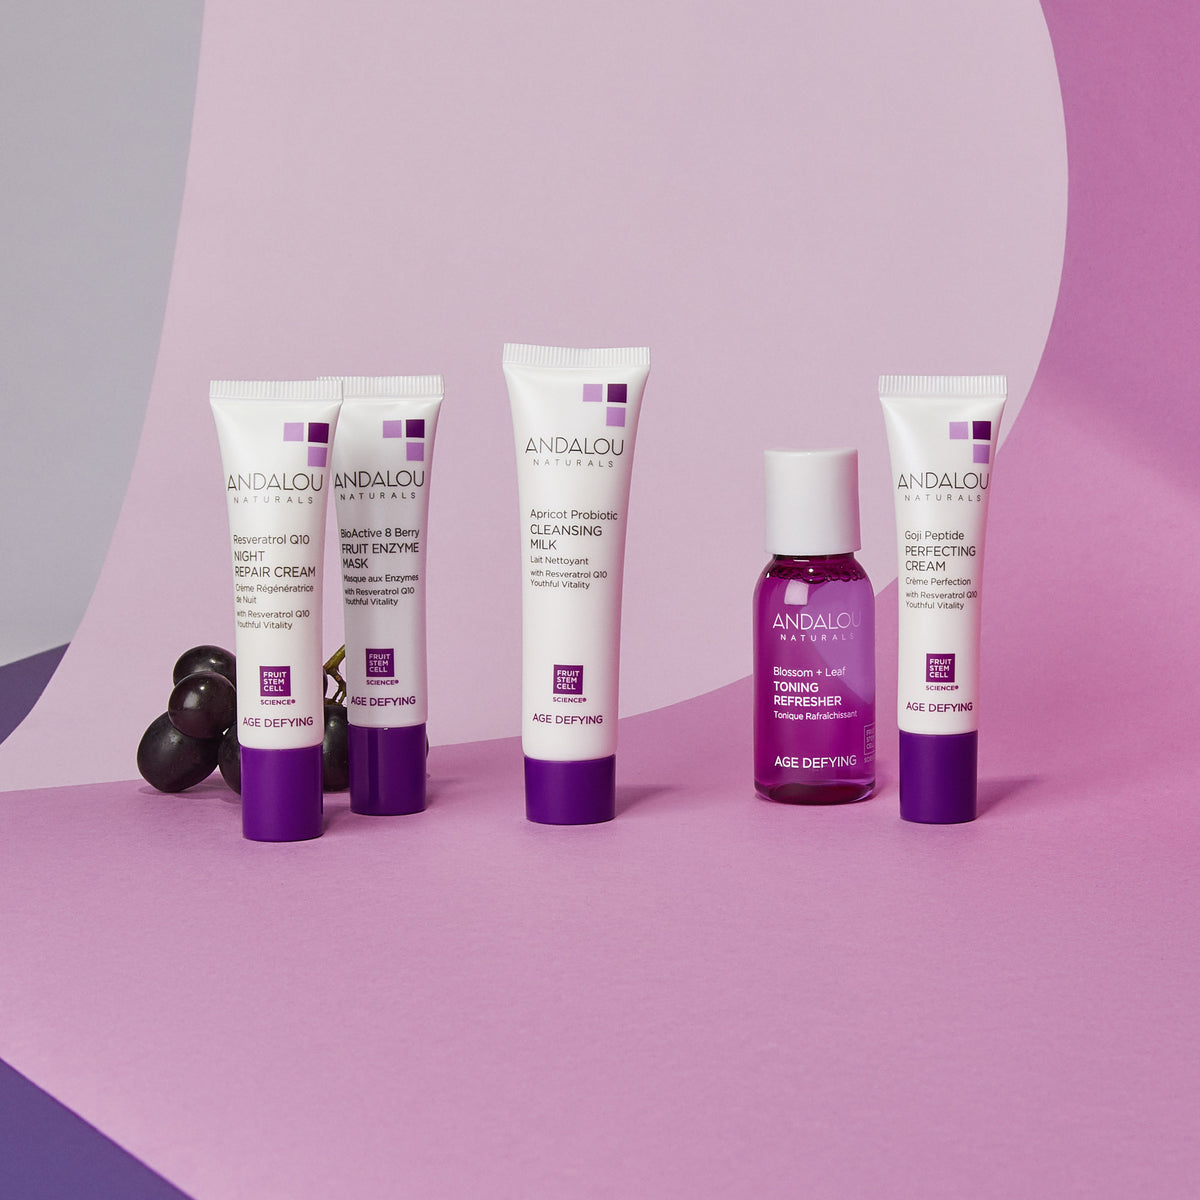 Age Defying Get Started Kit - Andalou Naturals US